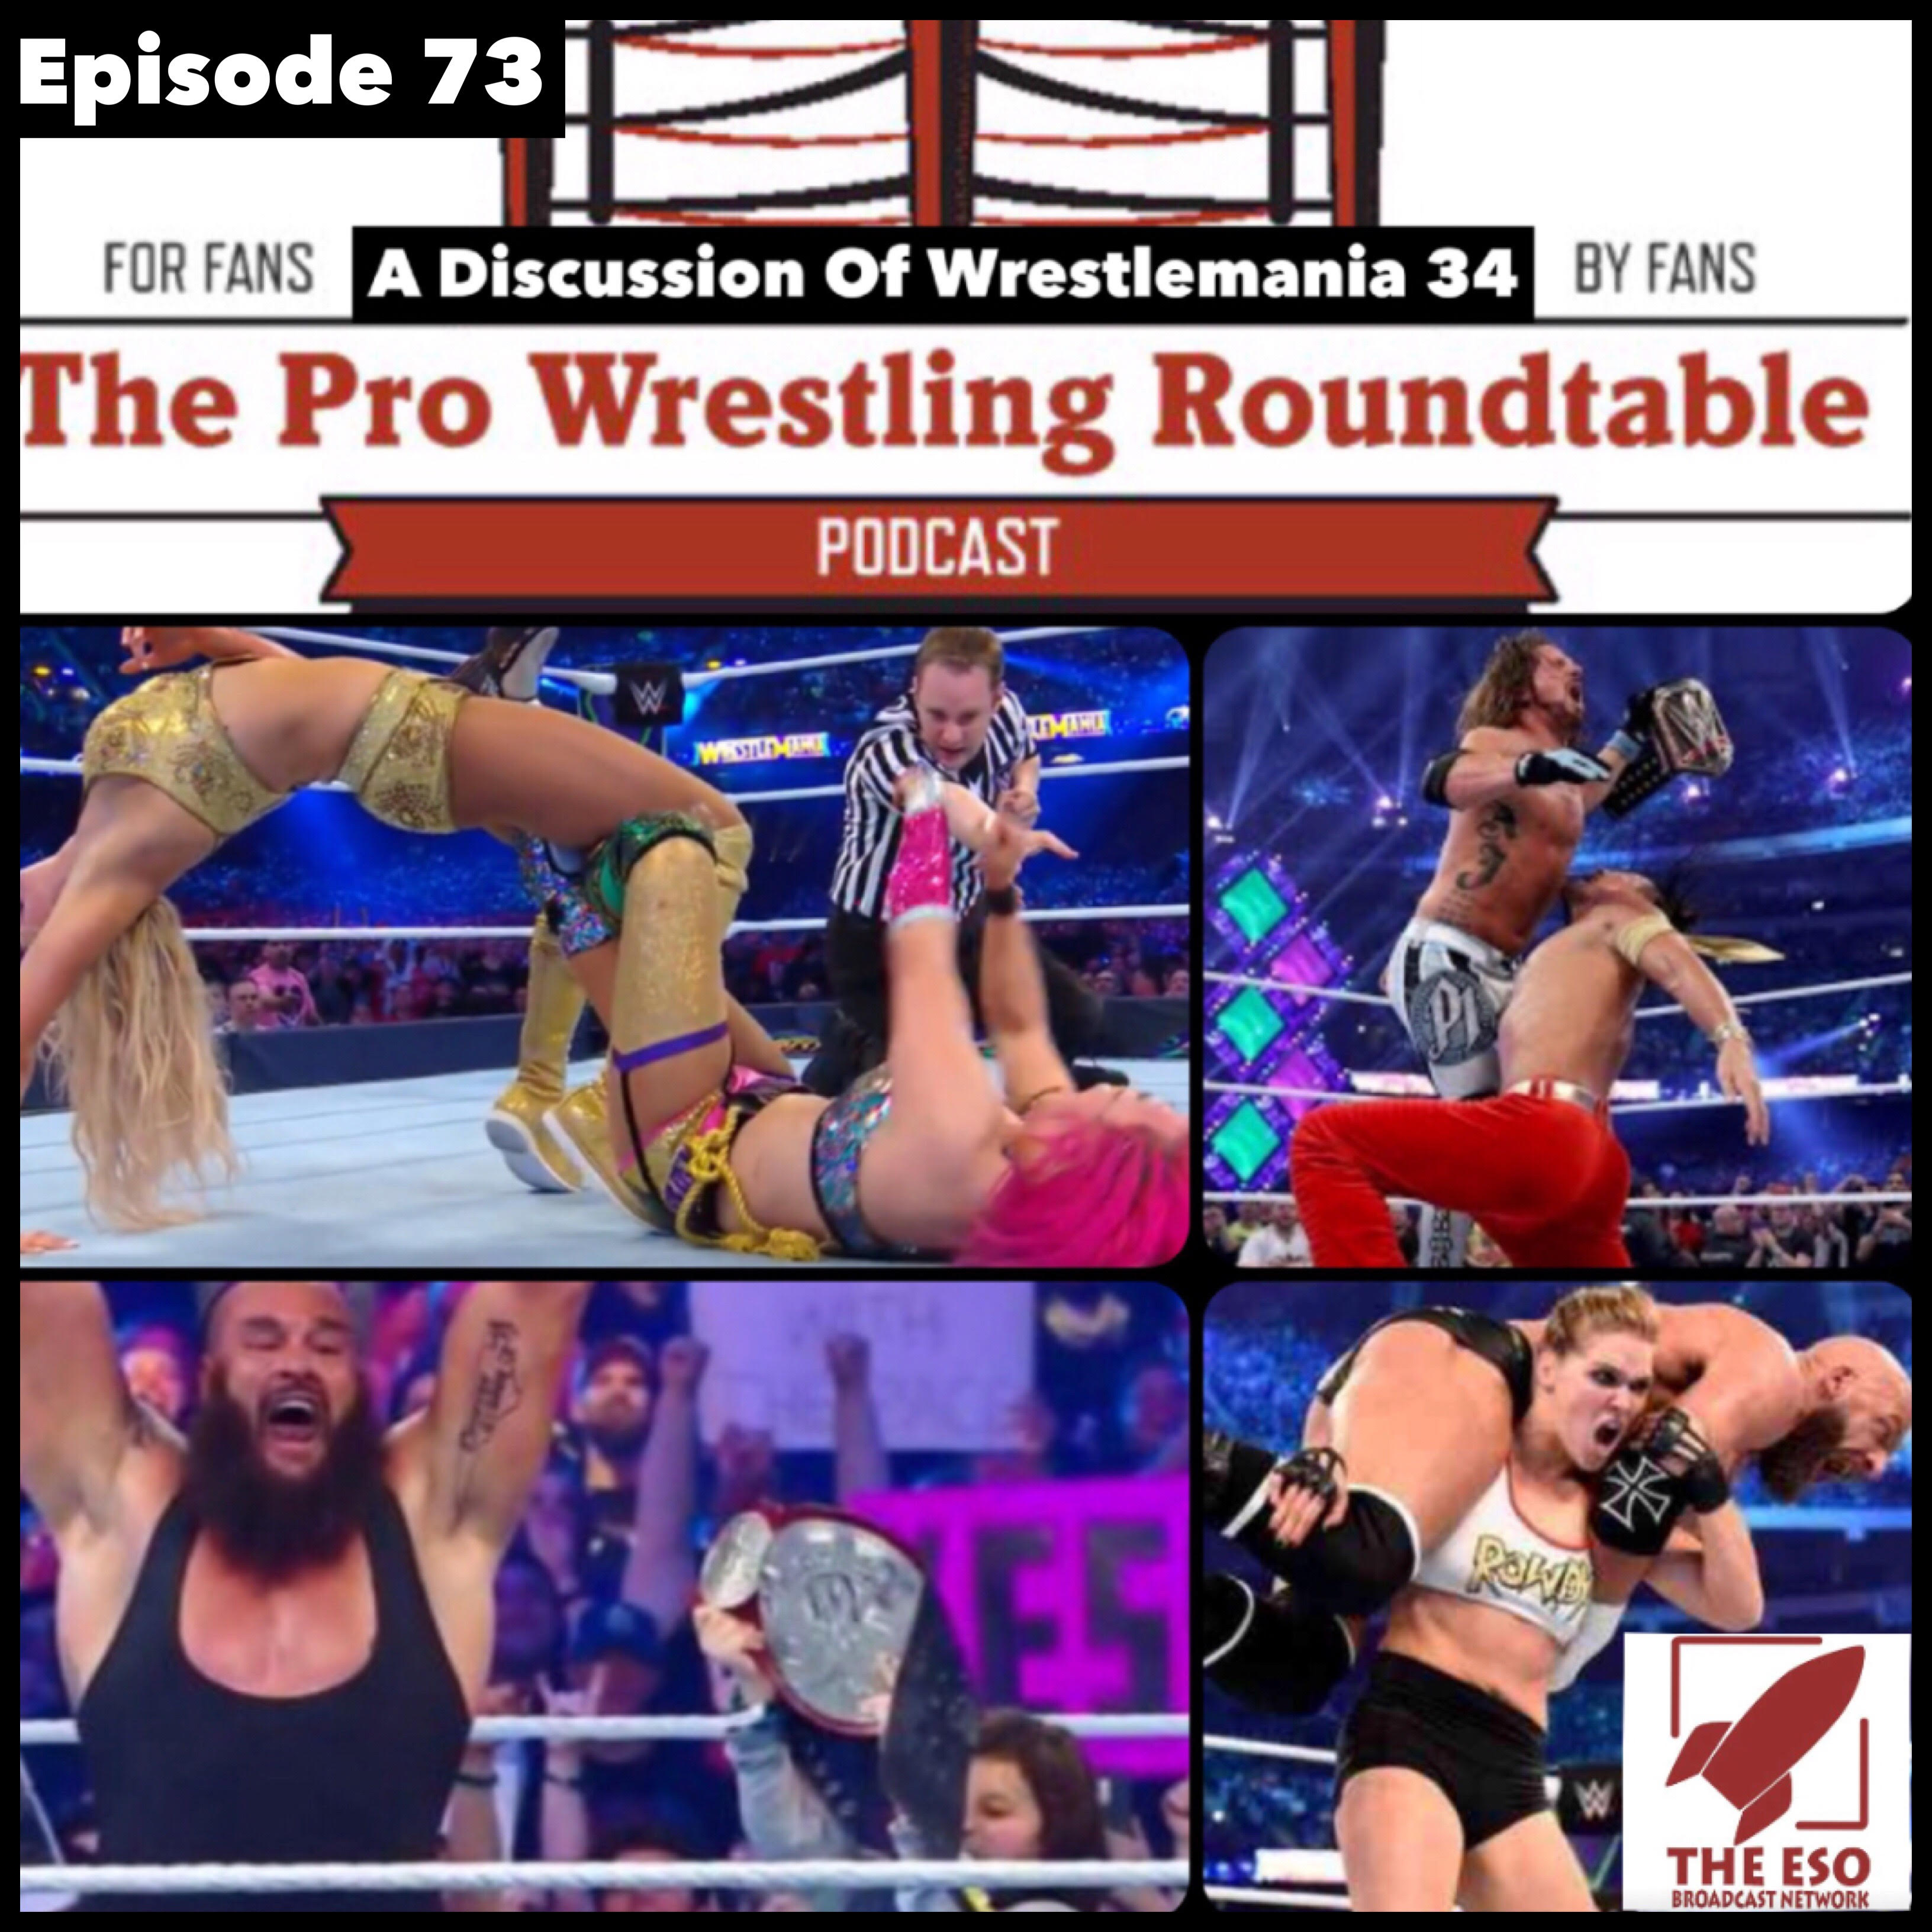 Episode 73: A Discussion Of Wrestlemania 34